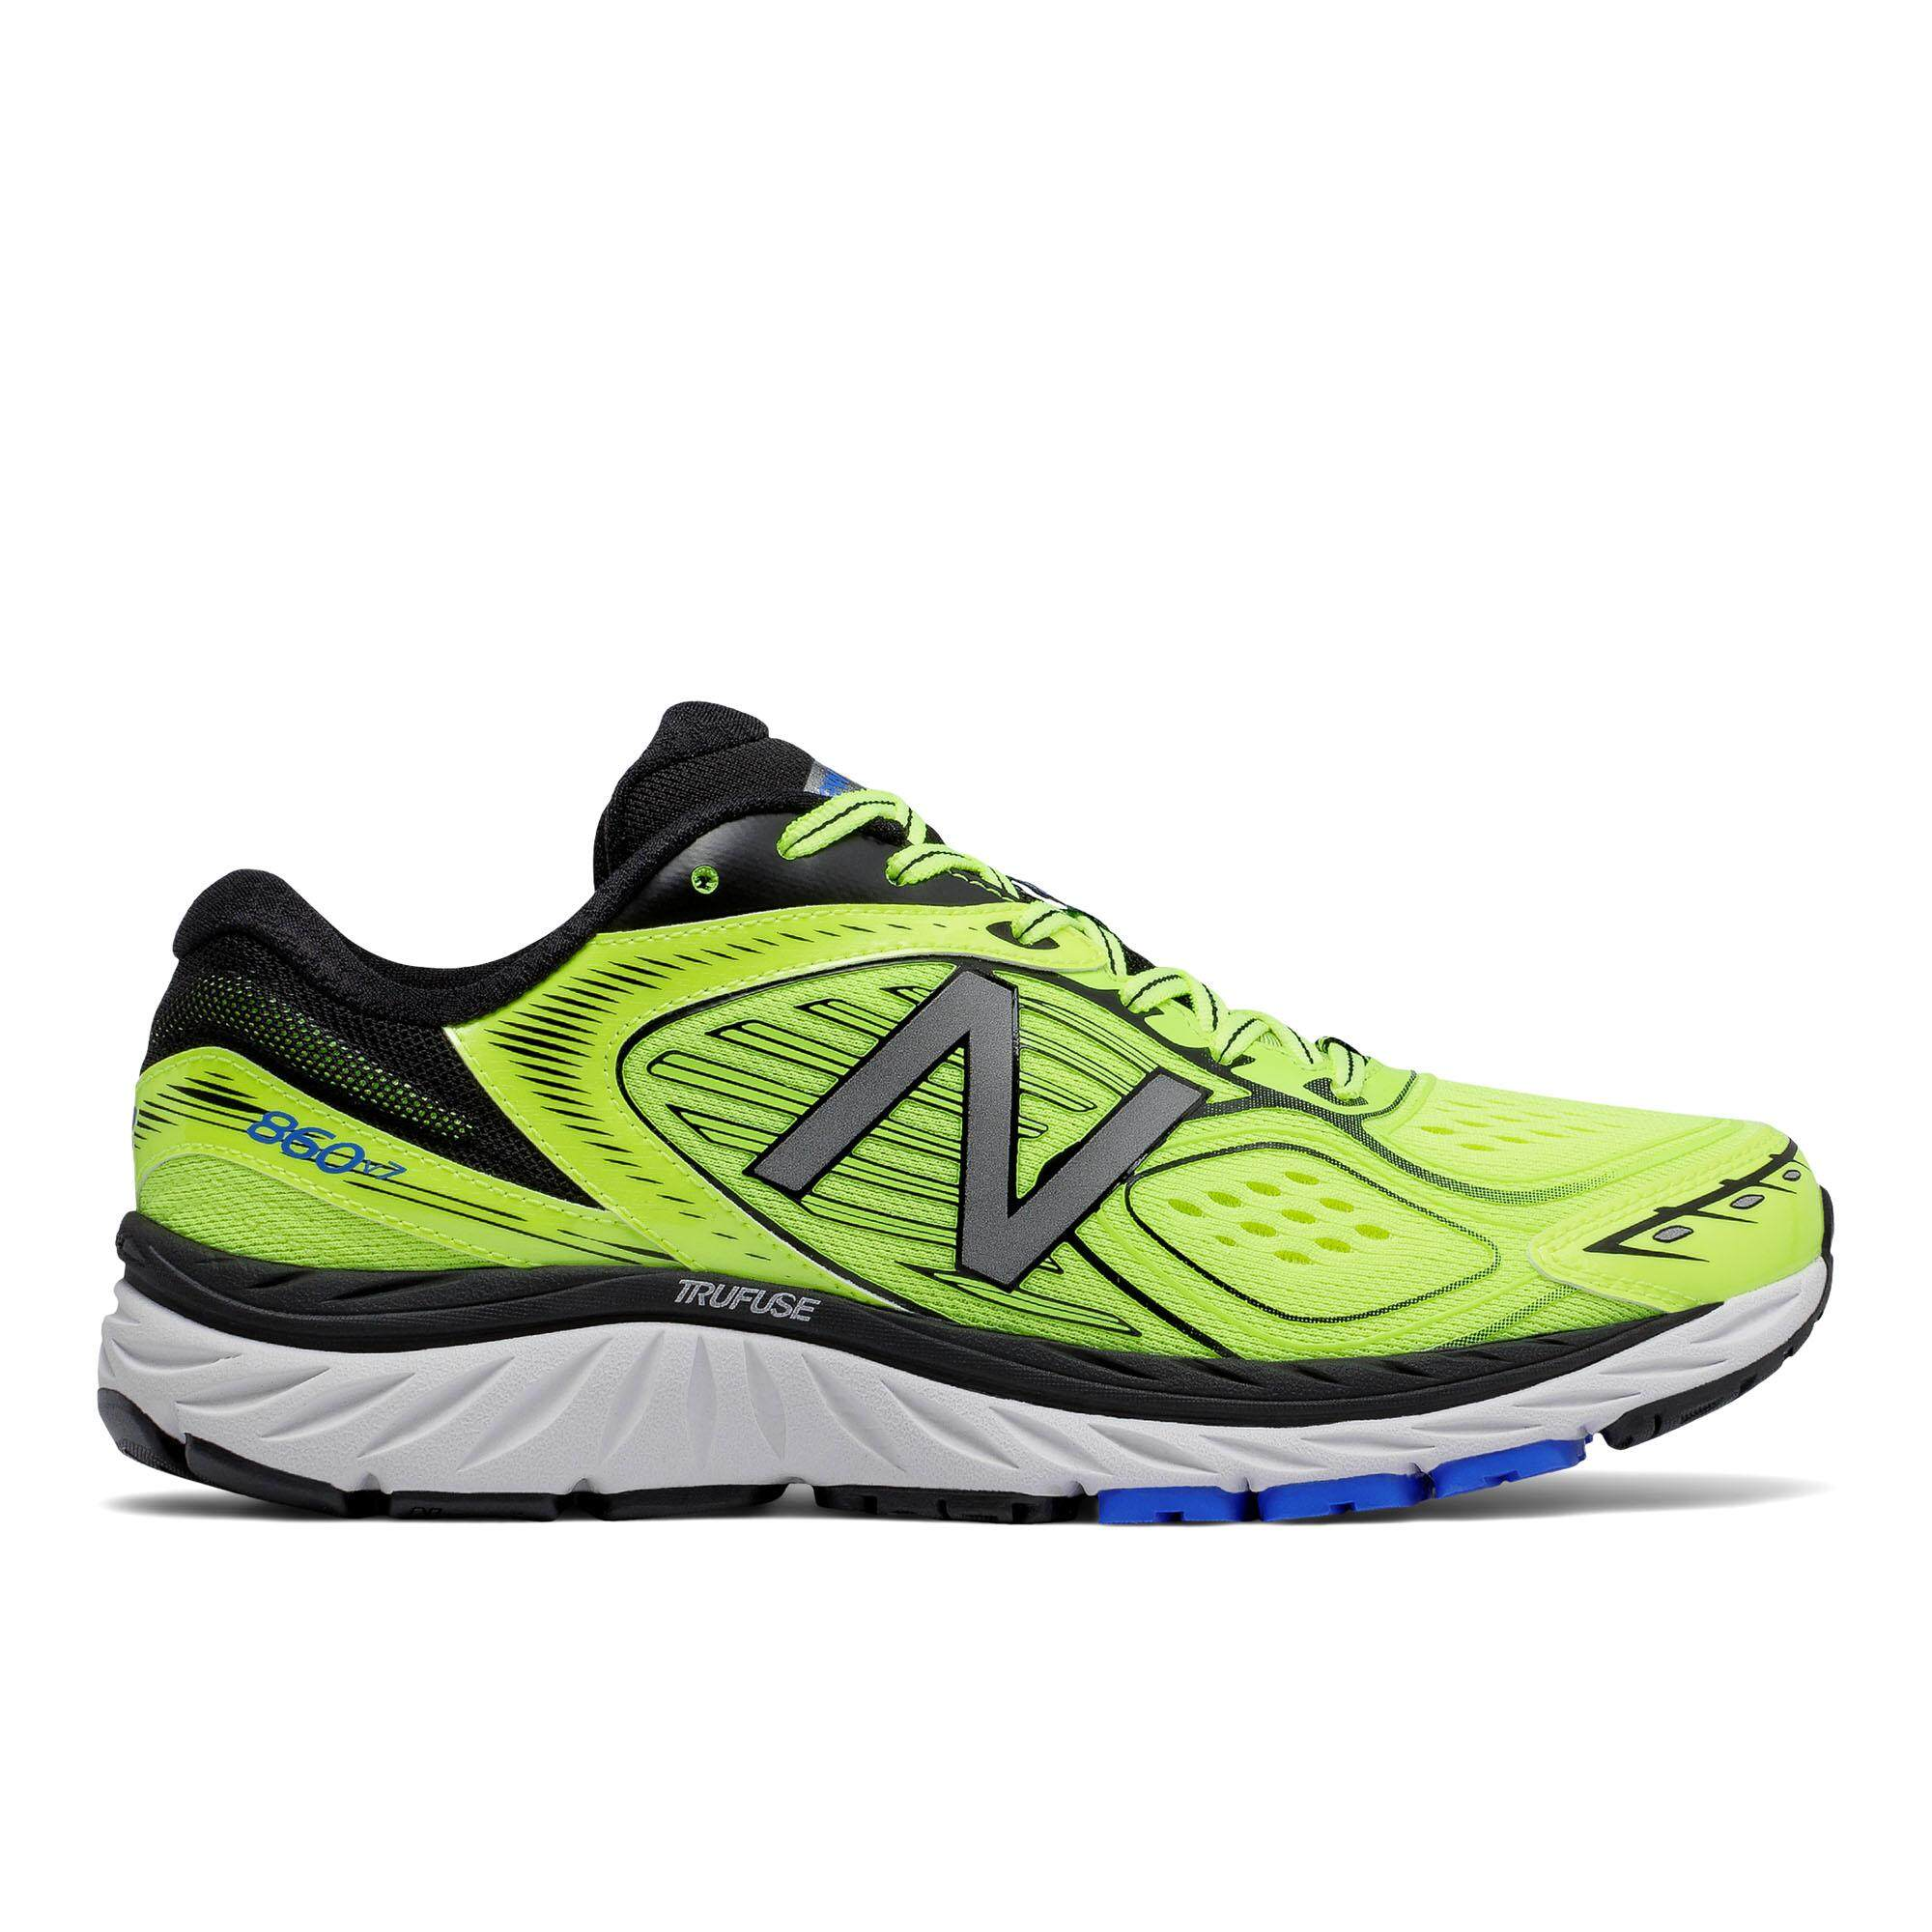 b2f0ea0fcc2af New Balance Men's Sports Shoes - Running Shoes price in Malaysia ...